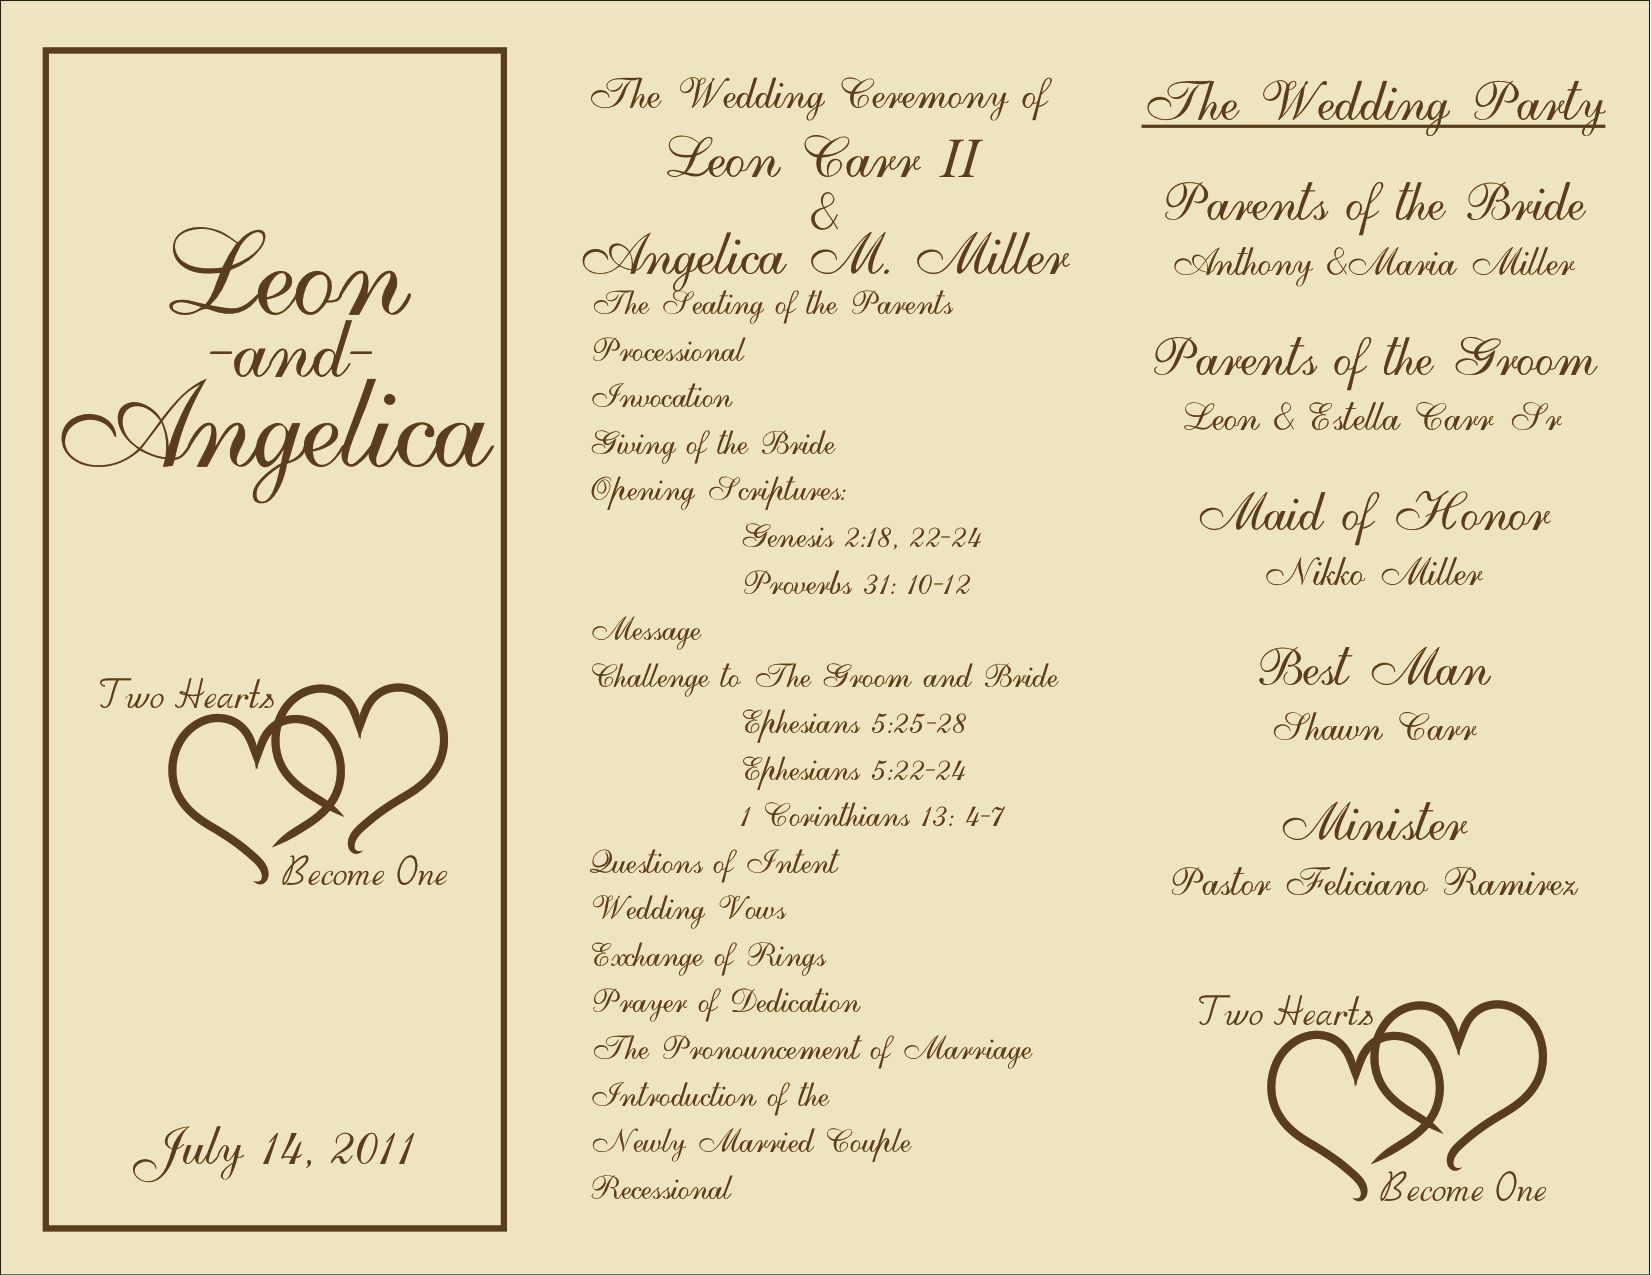 Free printable wedding programs templates sample wedding free printable wedding programs templates sample wedding ceremony programs pronofoot35fo Images